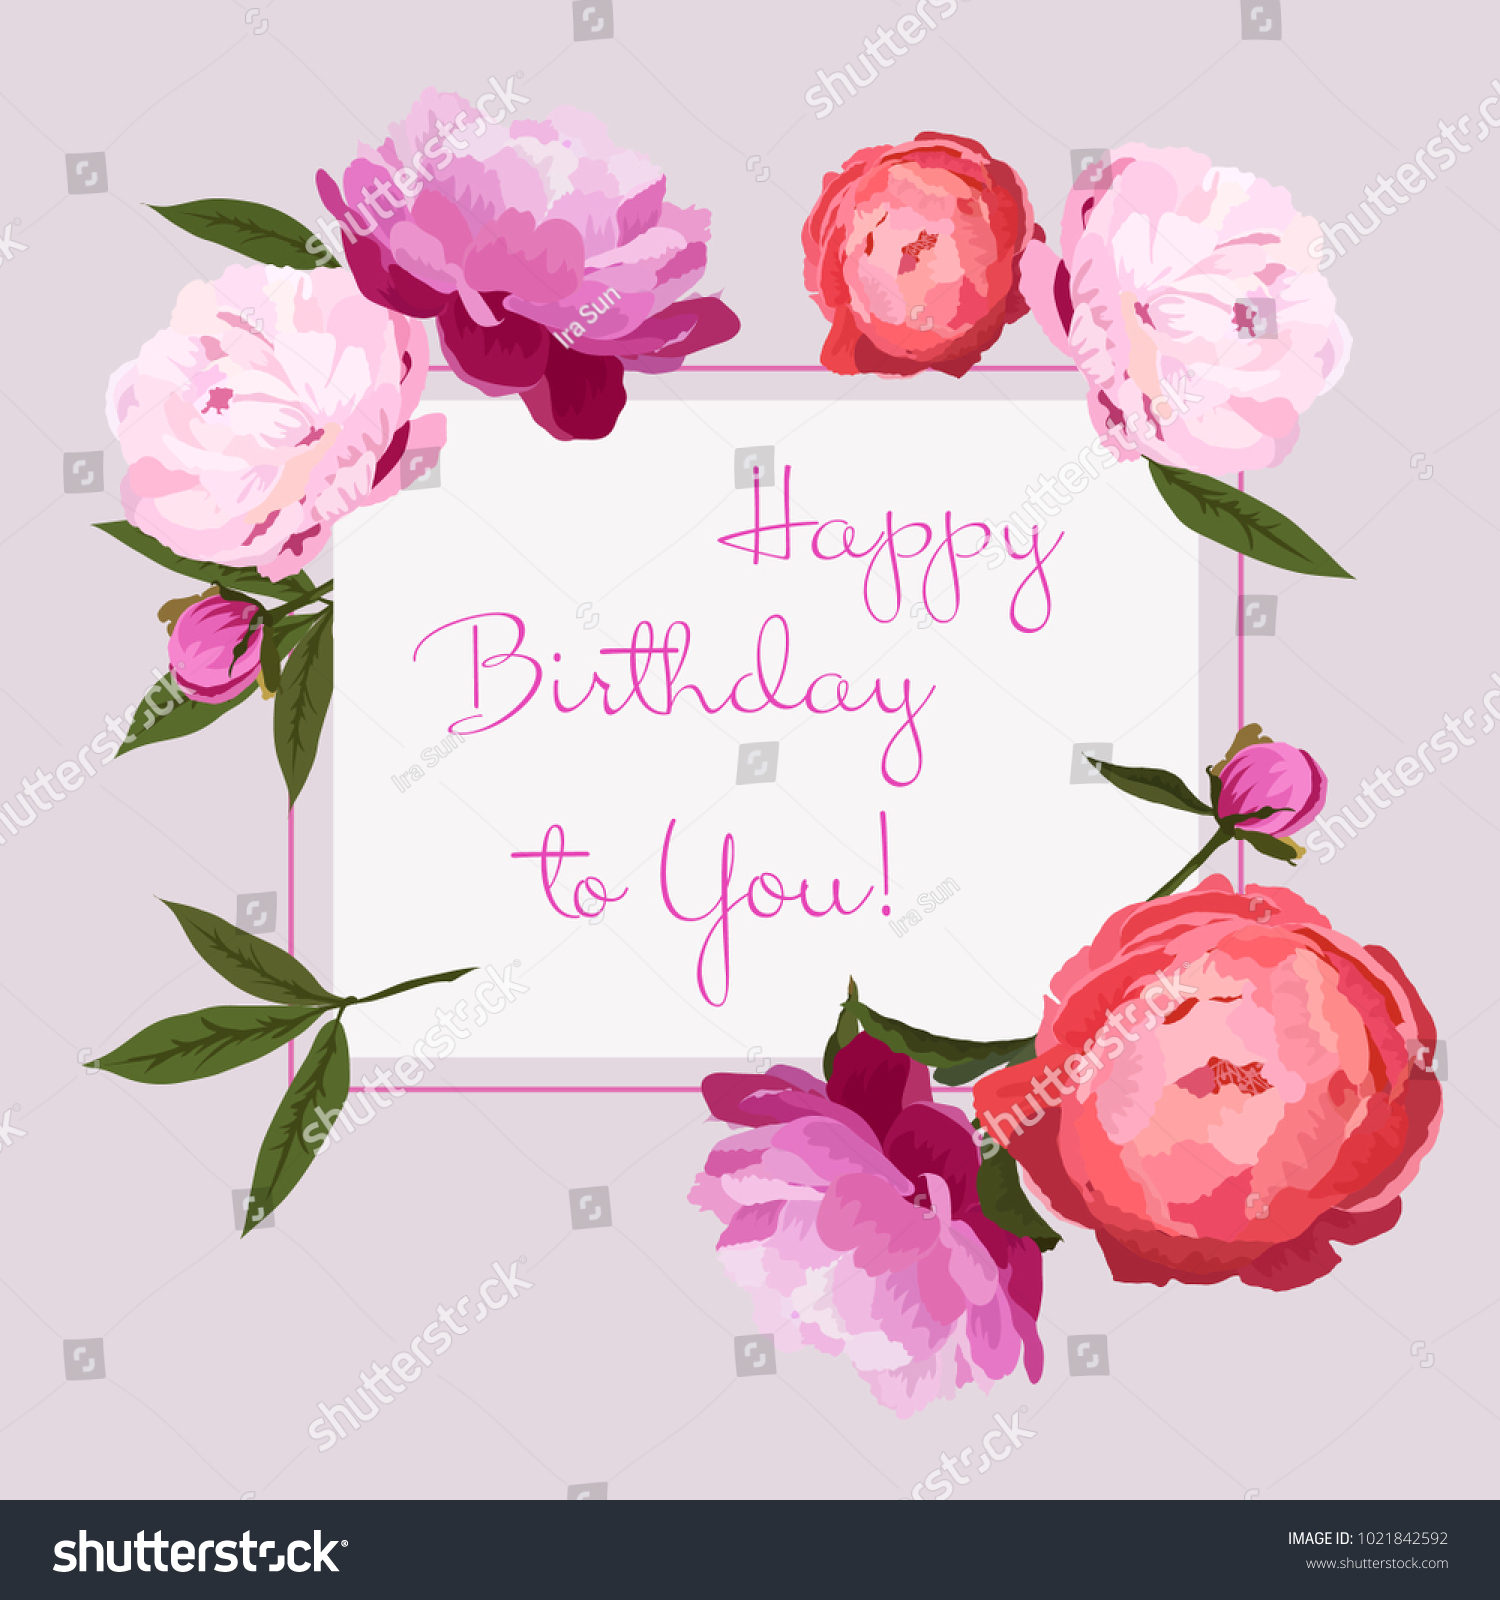 Vector Illustration Of Happy Birthday Greeting Card With Colorful Peonies Flowers Red Pink And